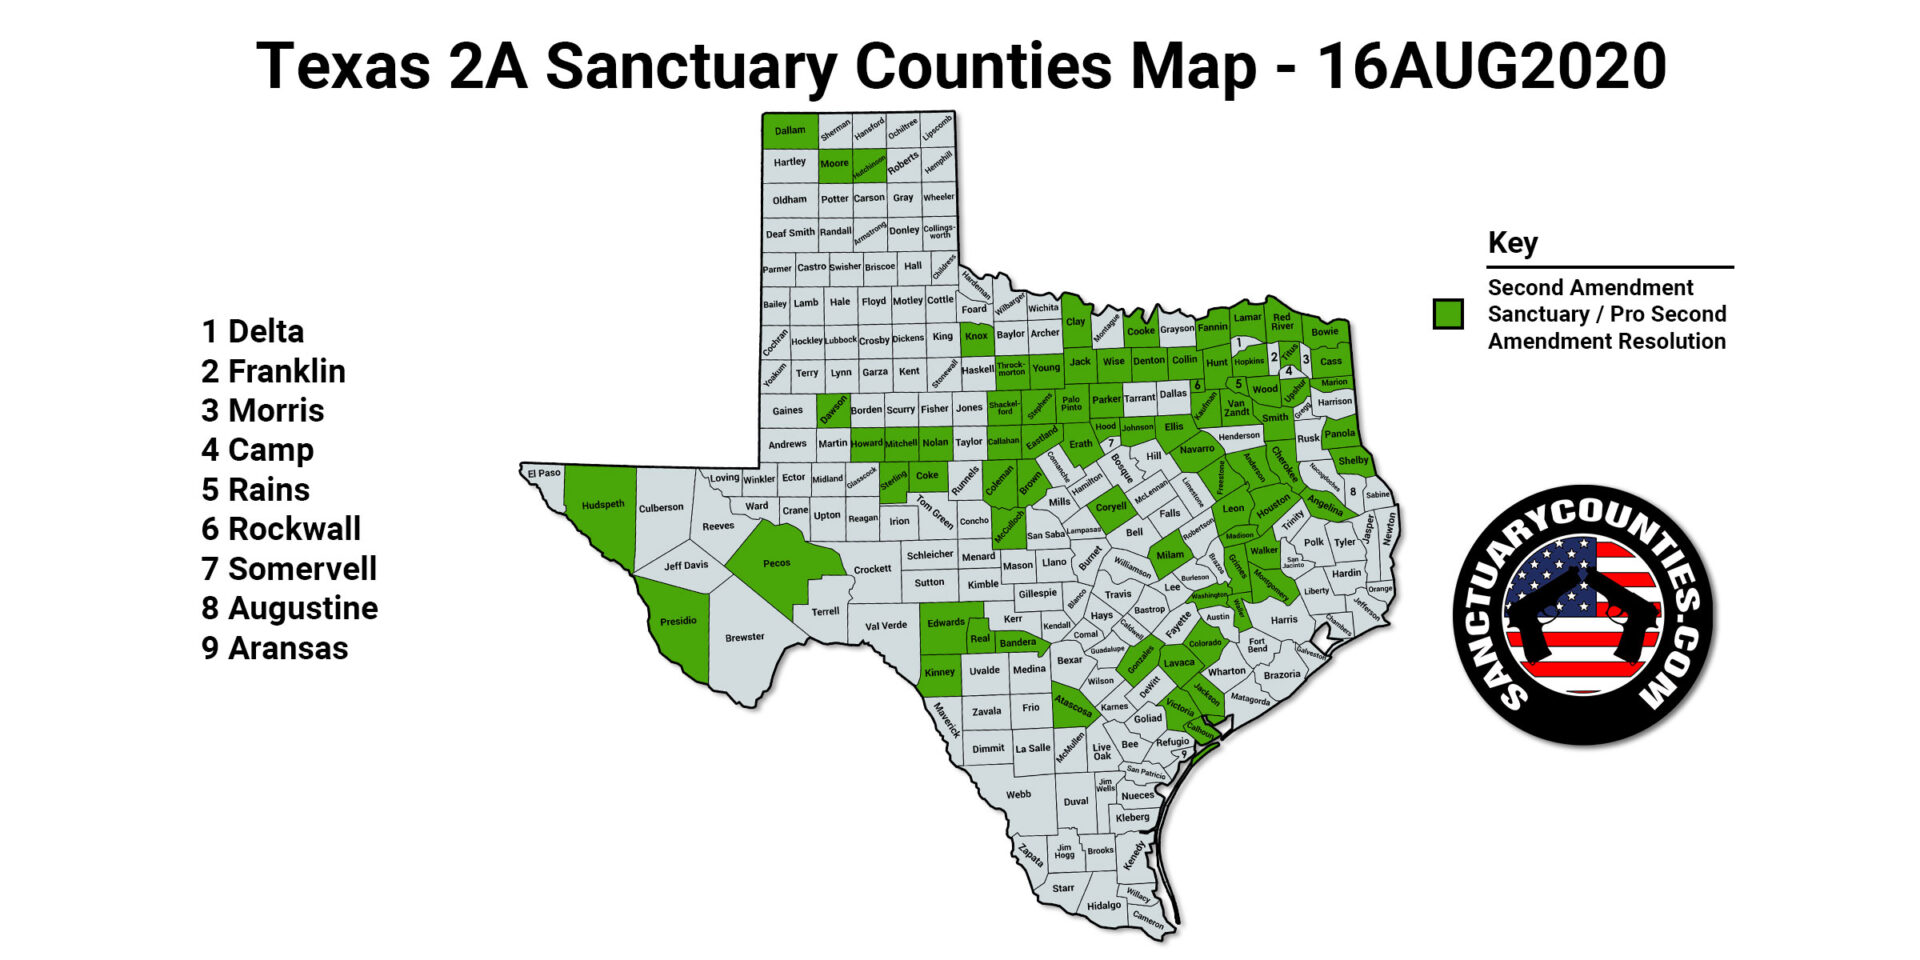 Texas 2A Sanctuary Counties Map